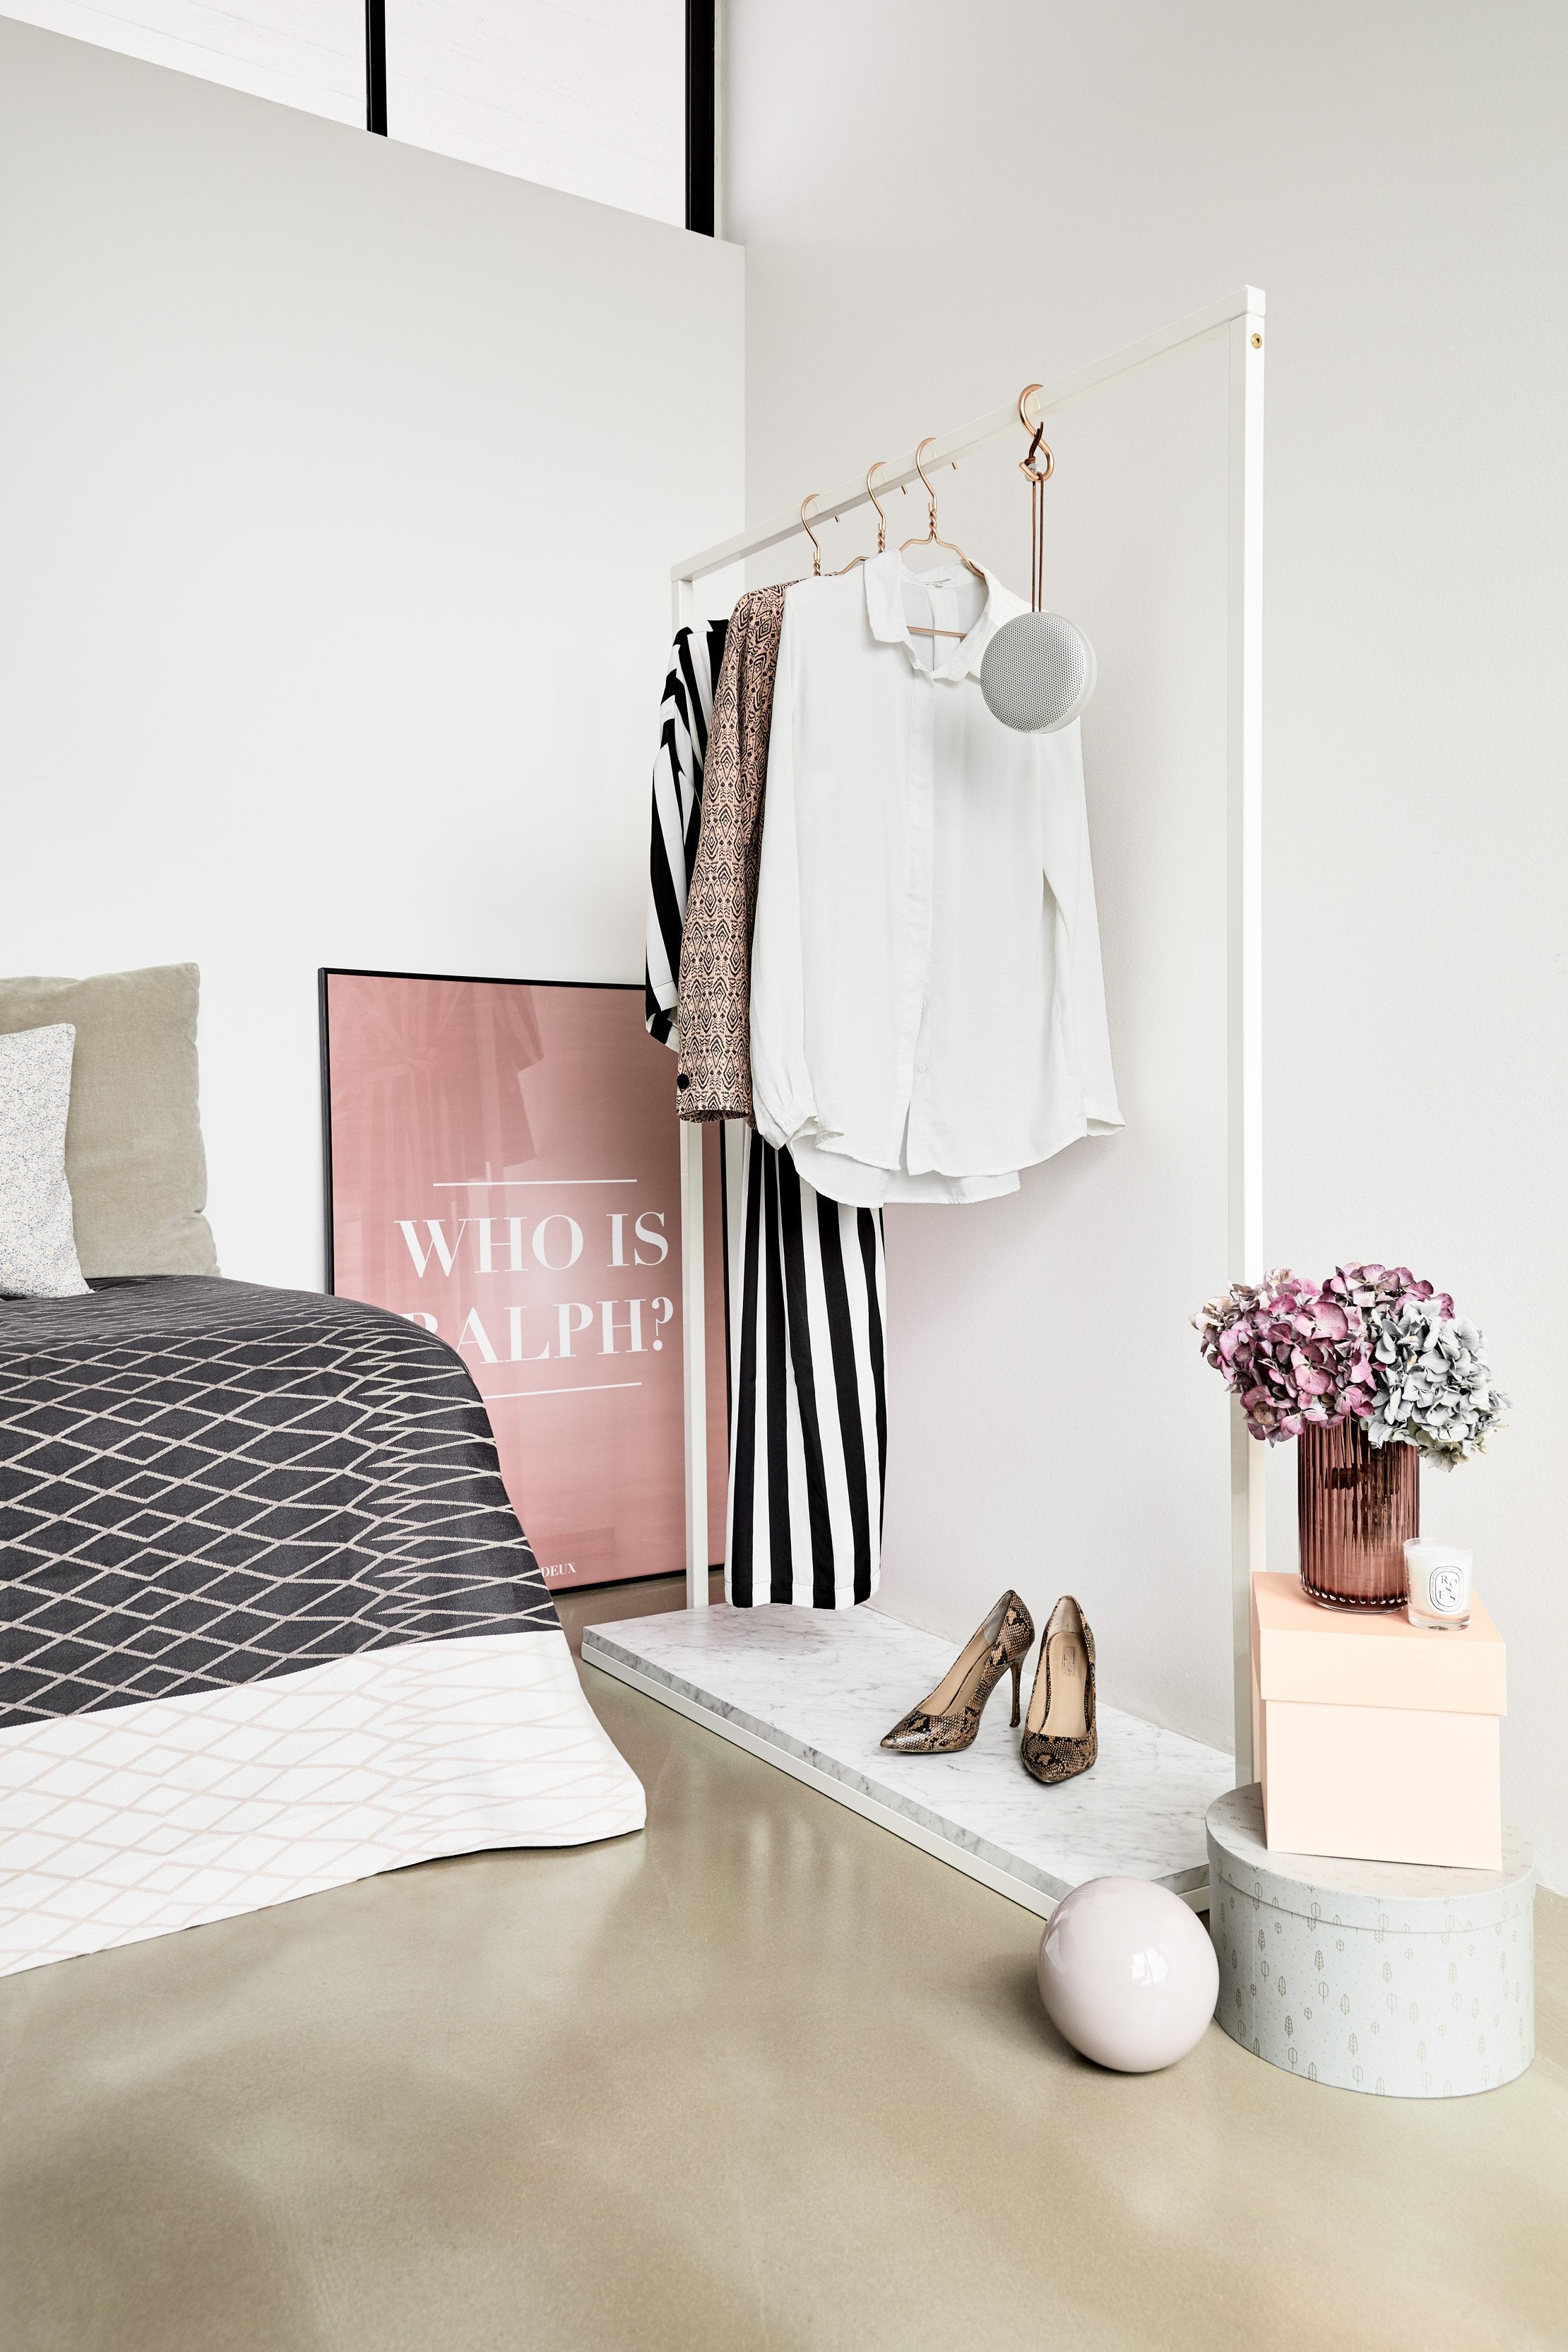 RackBuddy Mary - minimalist clothes rack made from iron in a white color